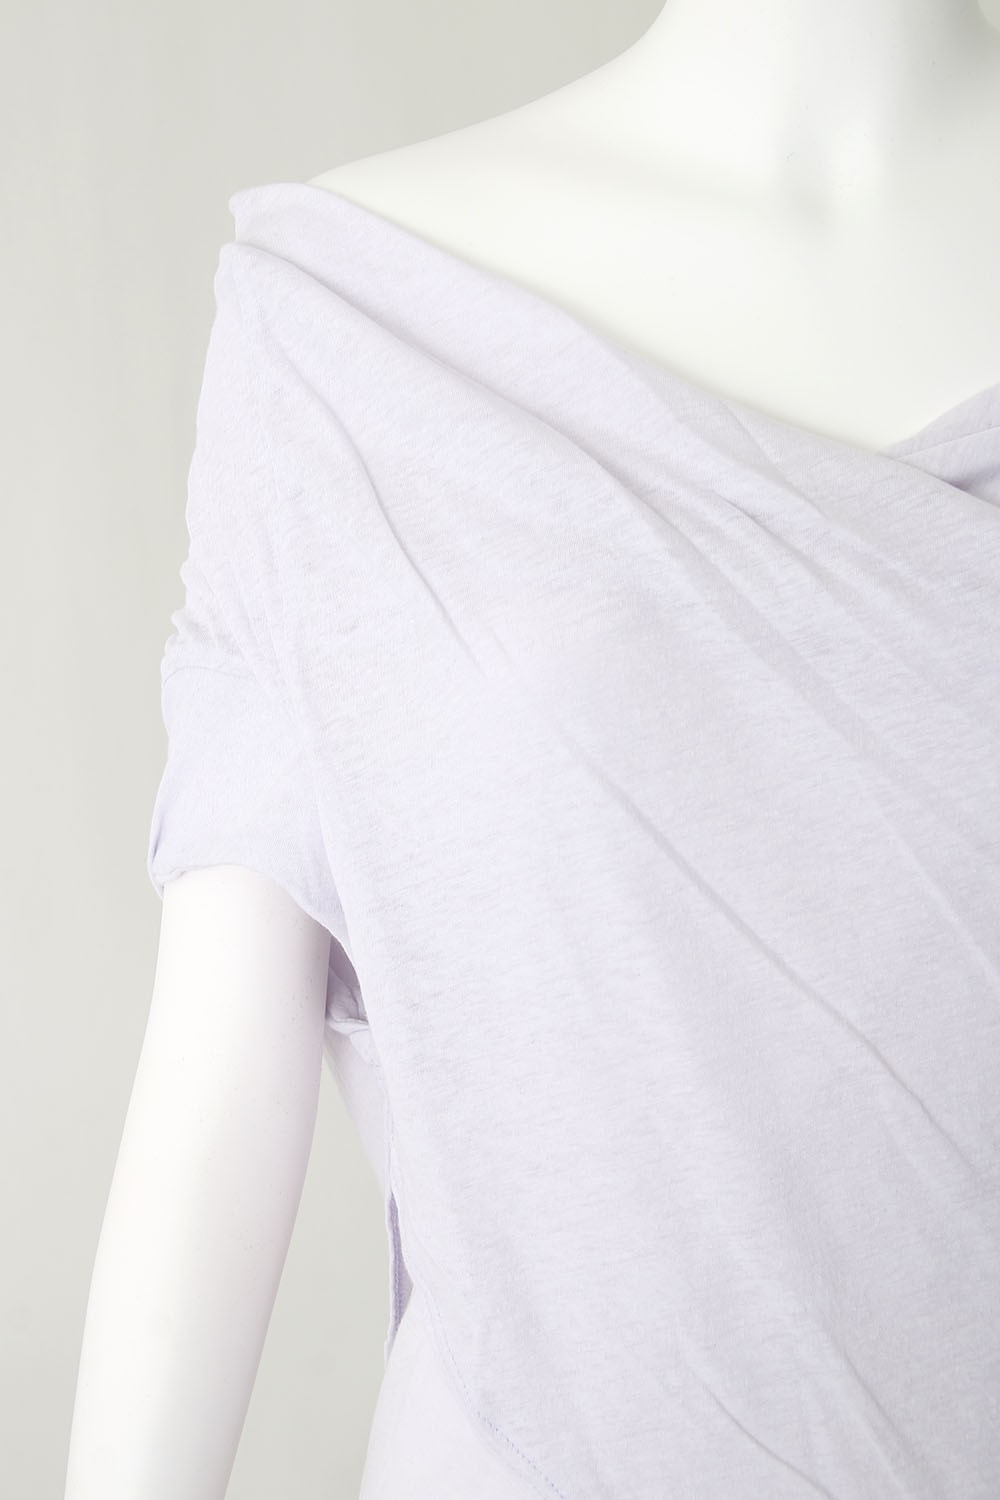 40/1 Cotton Linen Hard Twist  Yarn Jersey T-shirt - DK11-CS04-T02